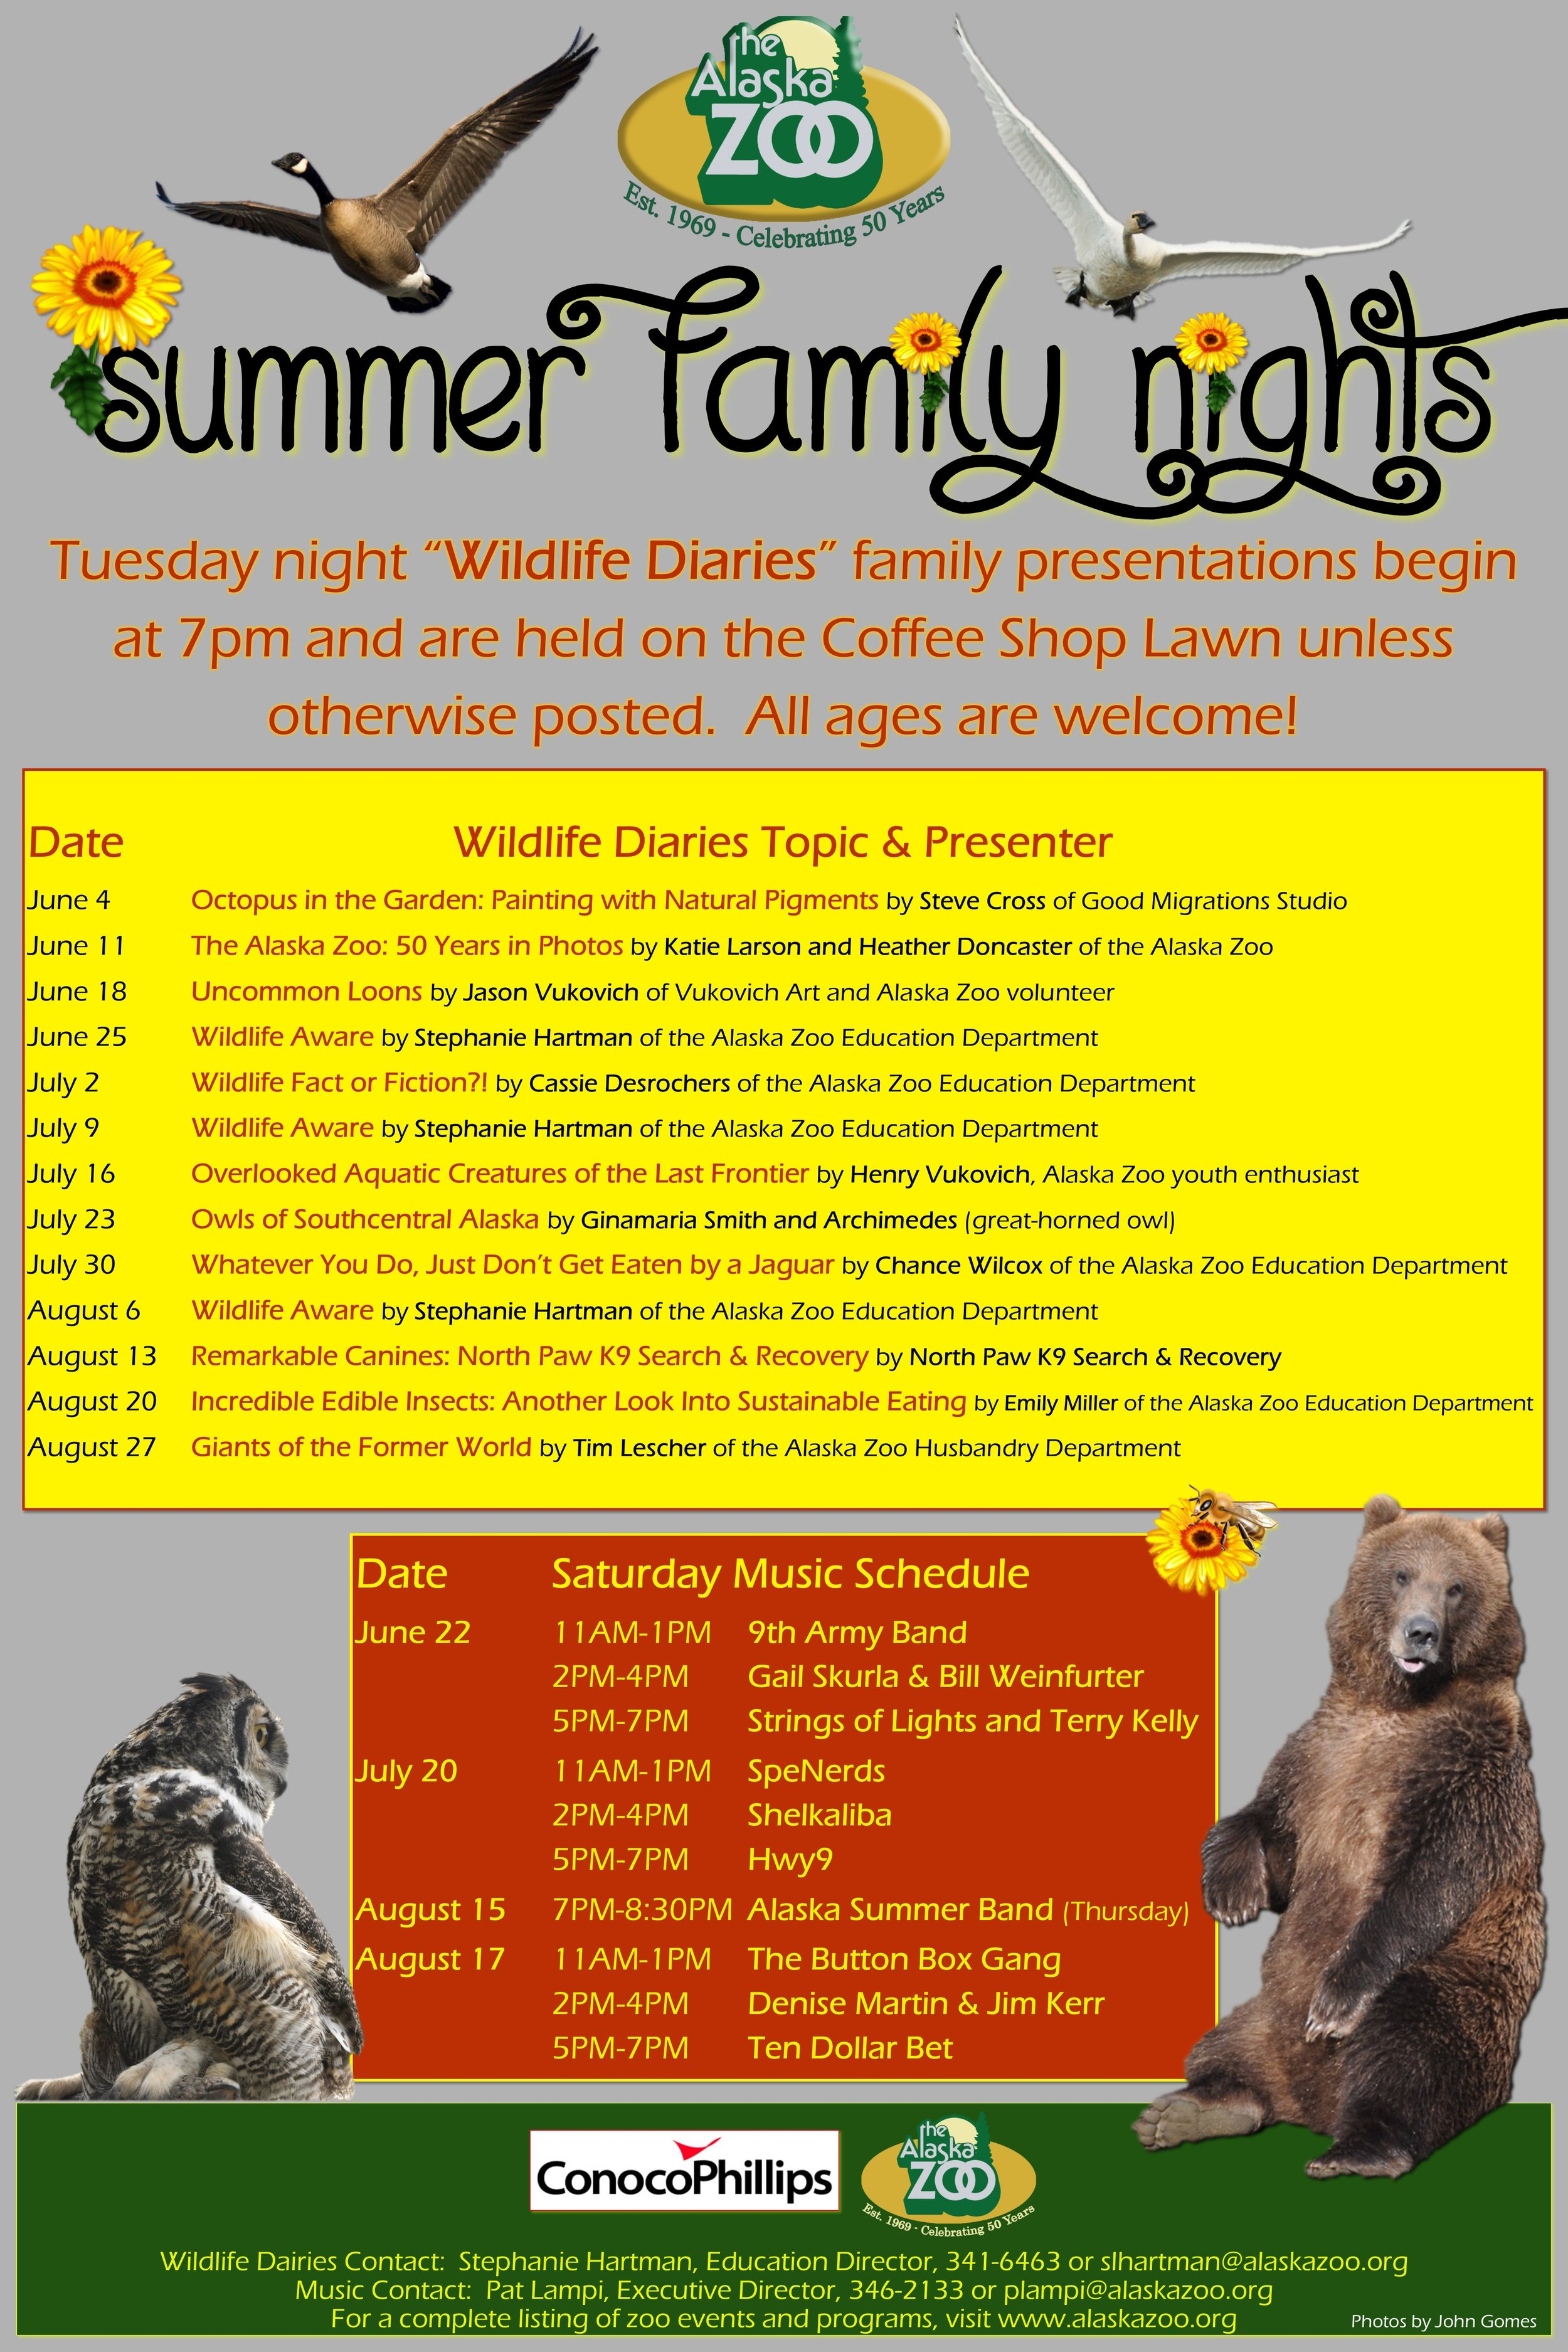 Summer Family Nights Poster 24x36.jpg